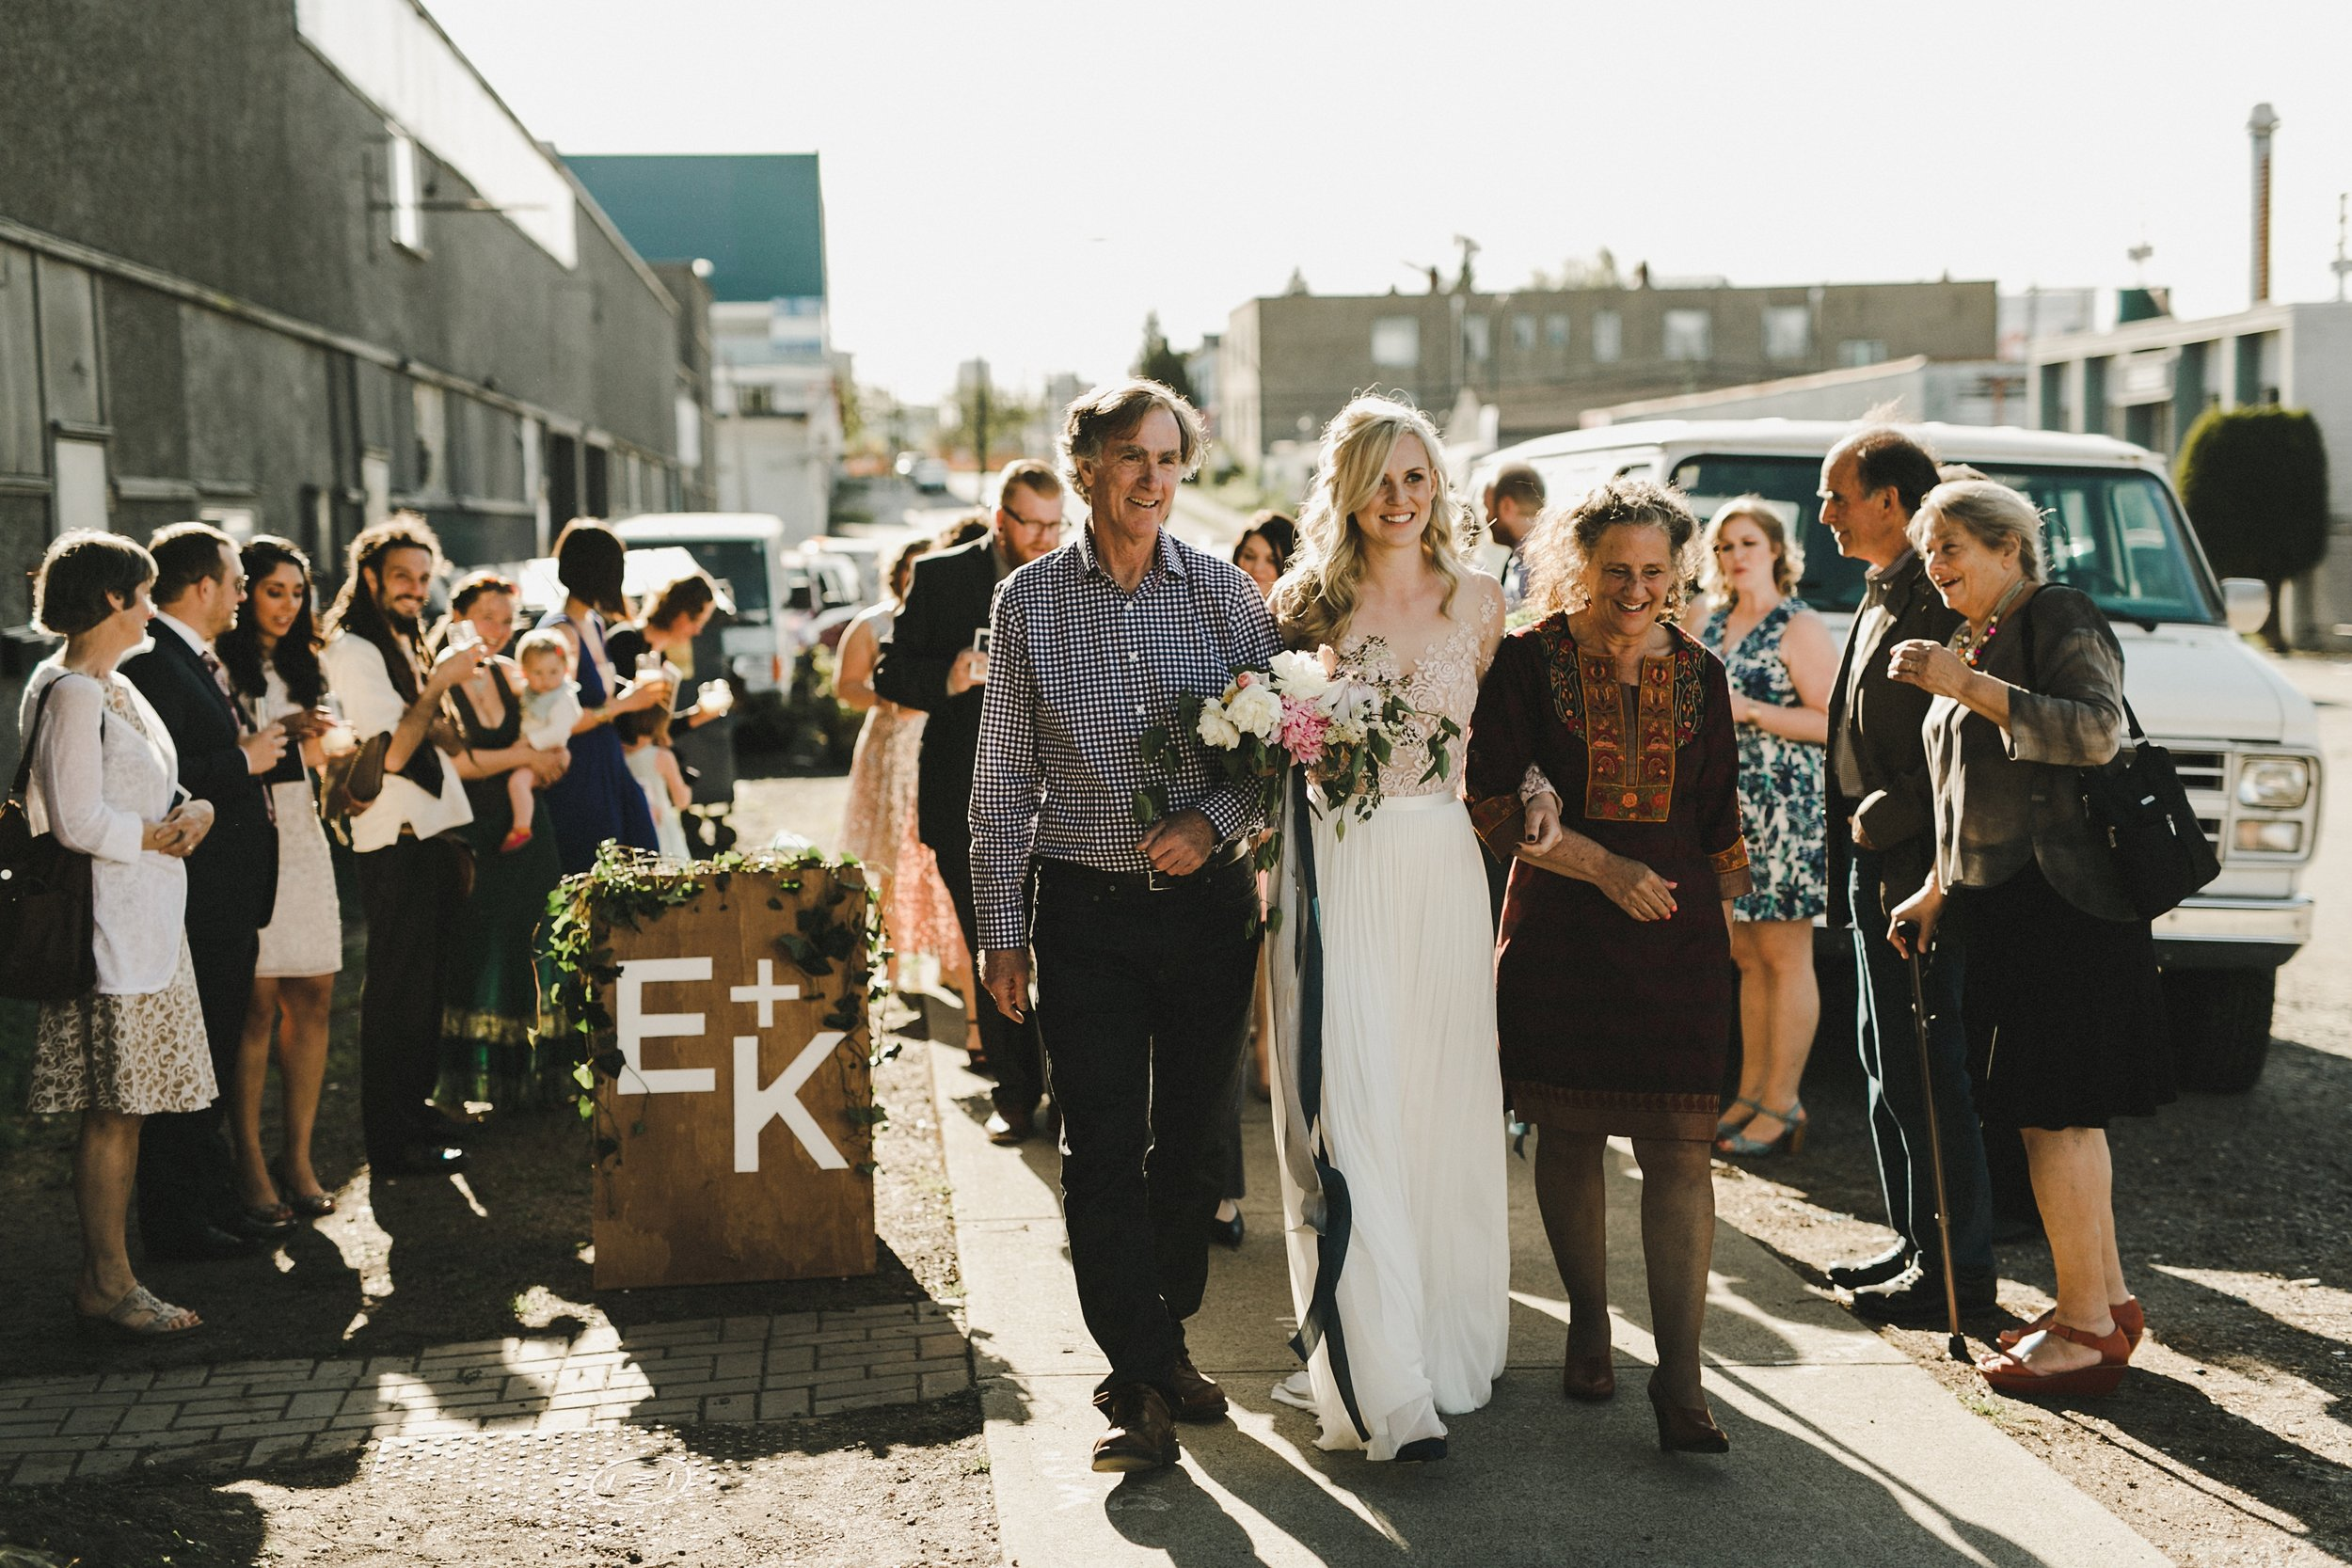 Why you should hire a wedding videographer, photos by Shari + Mike Photographers, video by Hello Tomorrow